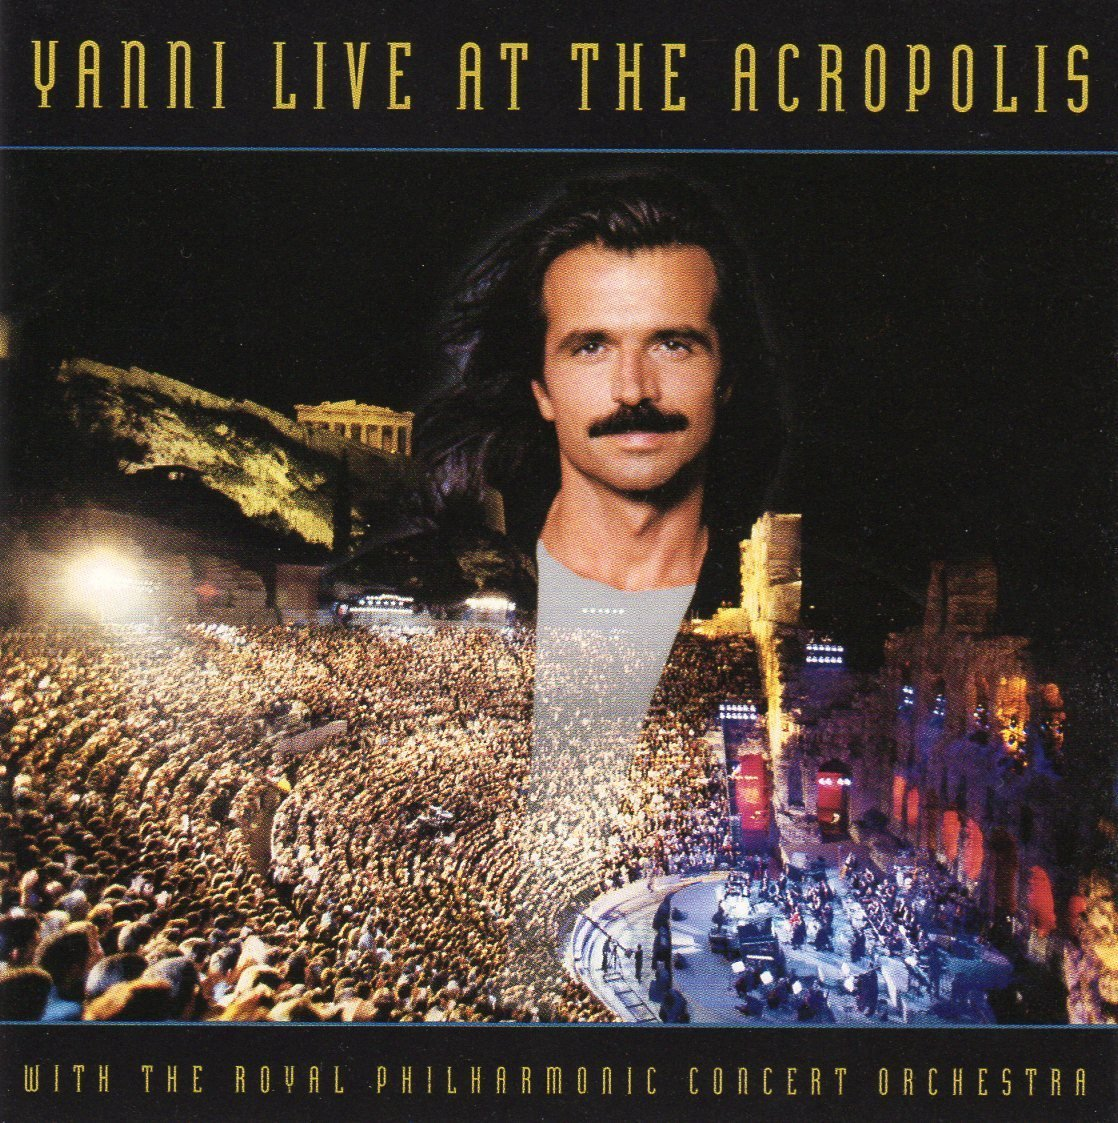 YANNI – LIVE AT THE ACROPOLIS